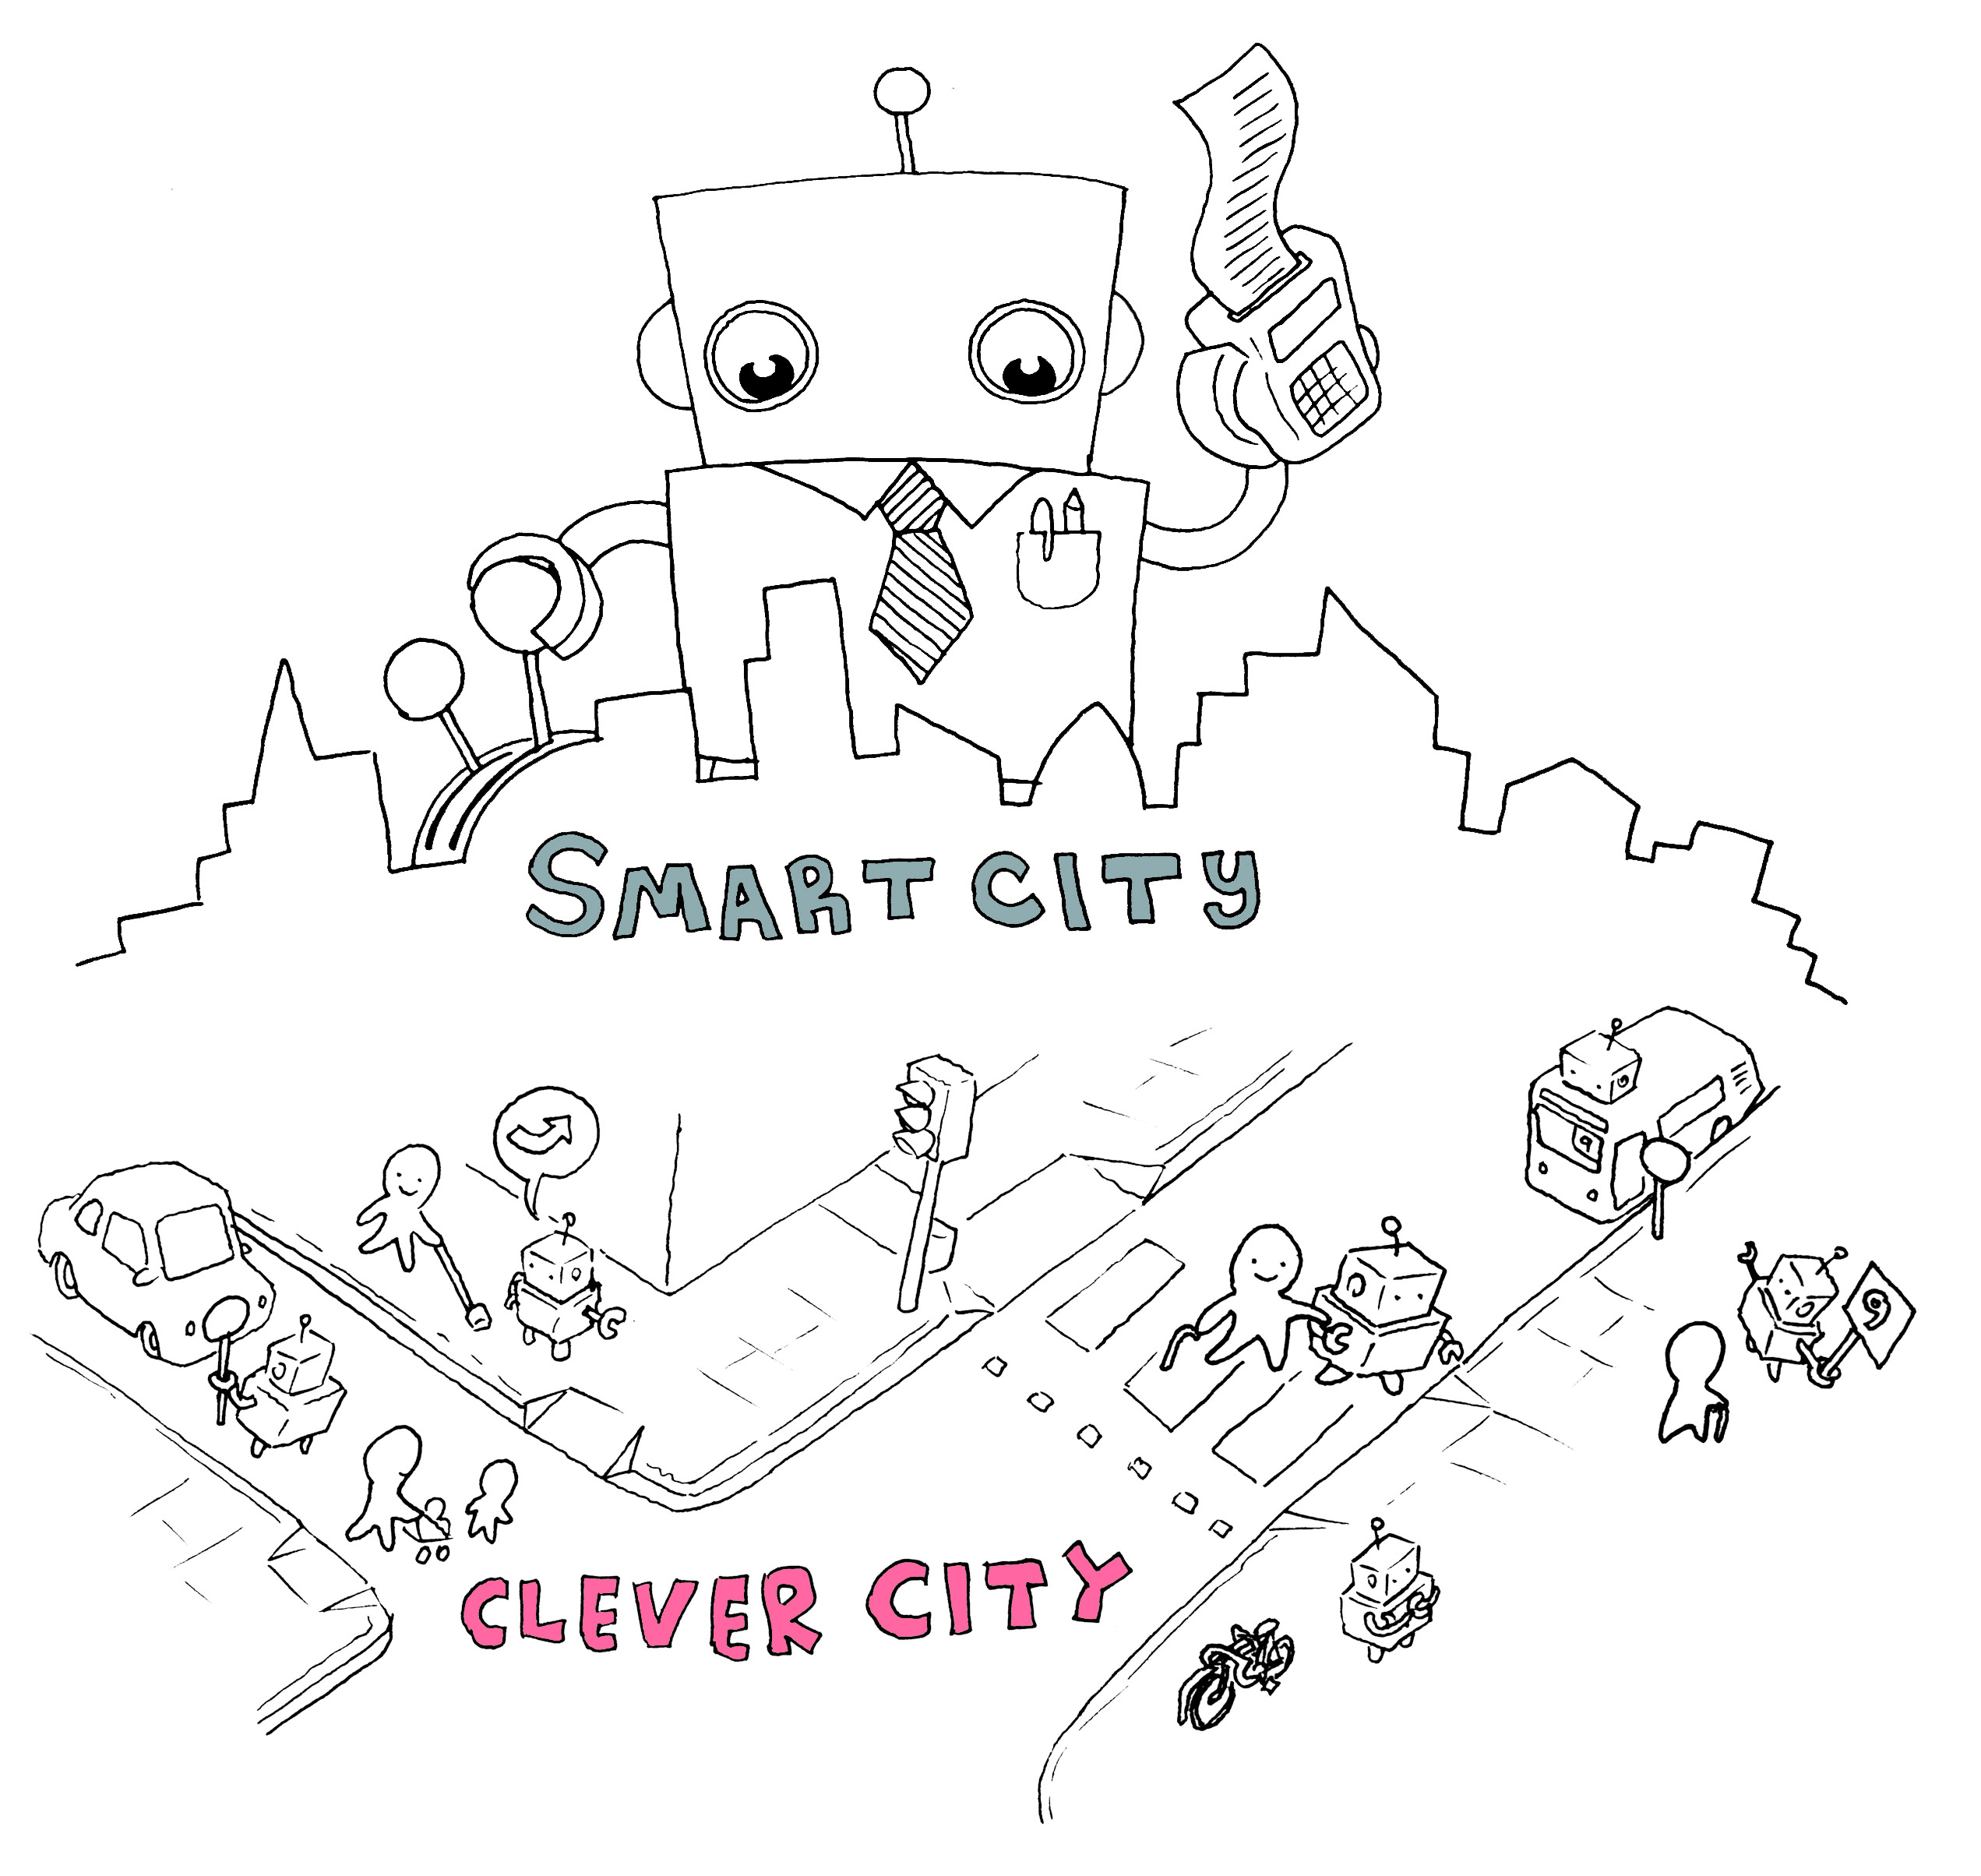 CleverCity